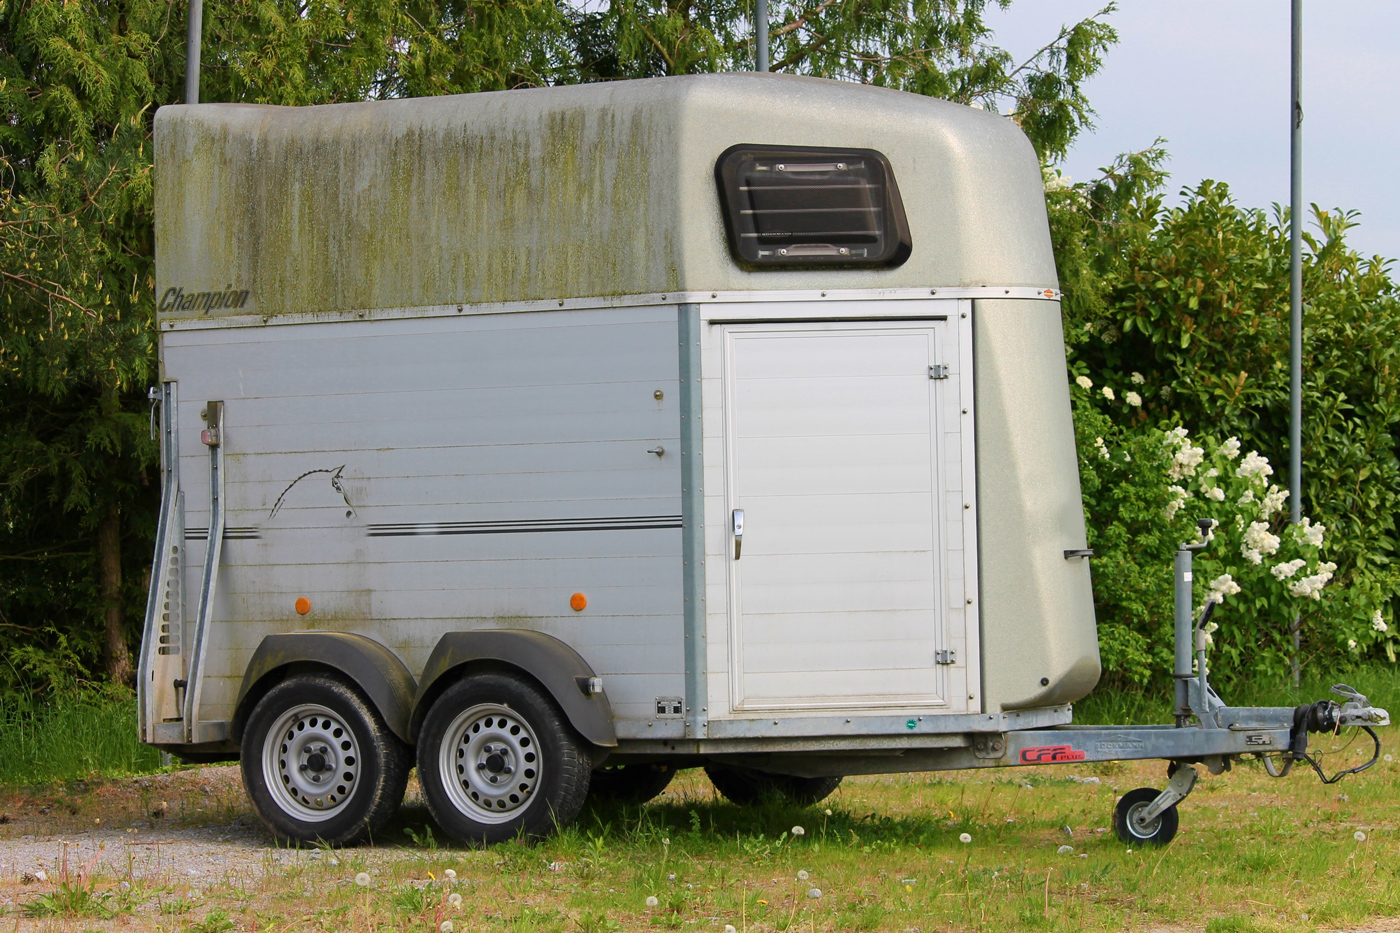 A horse trailer with a mossy upper section parked in a field with no shelter